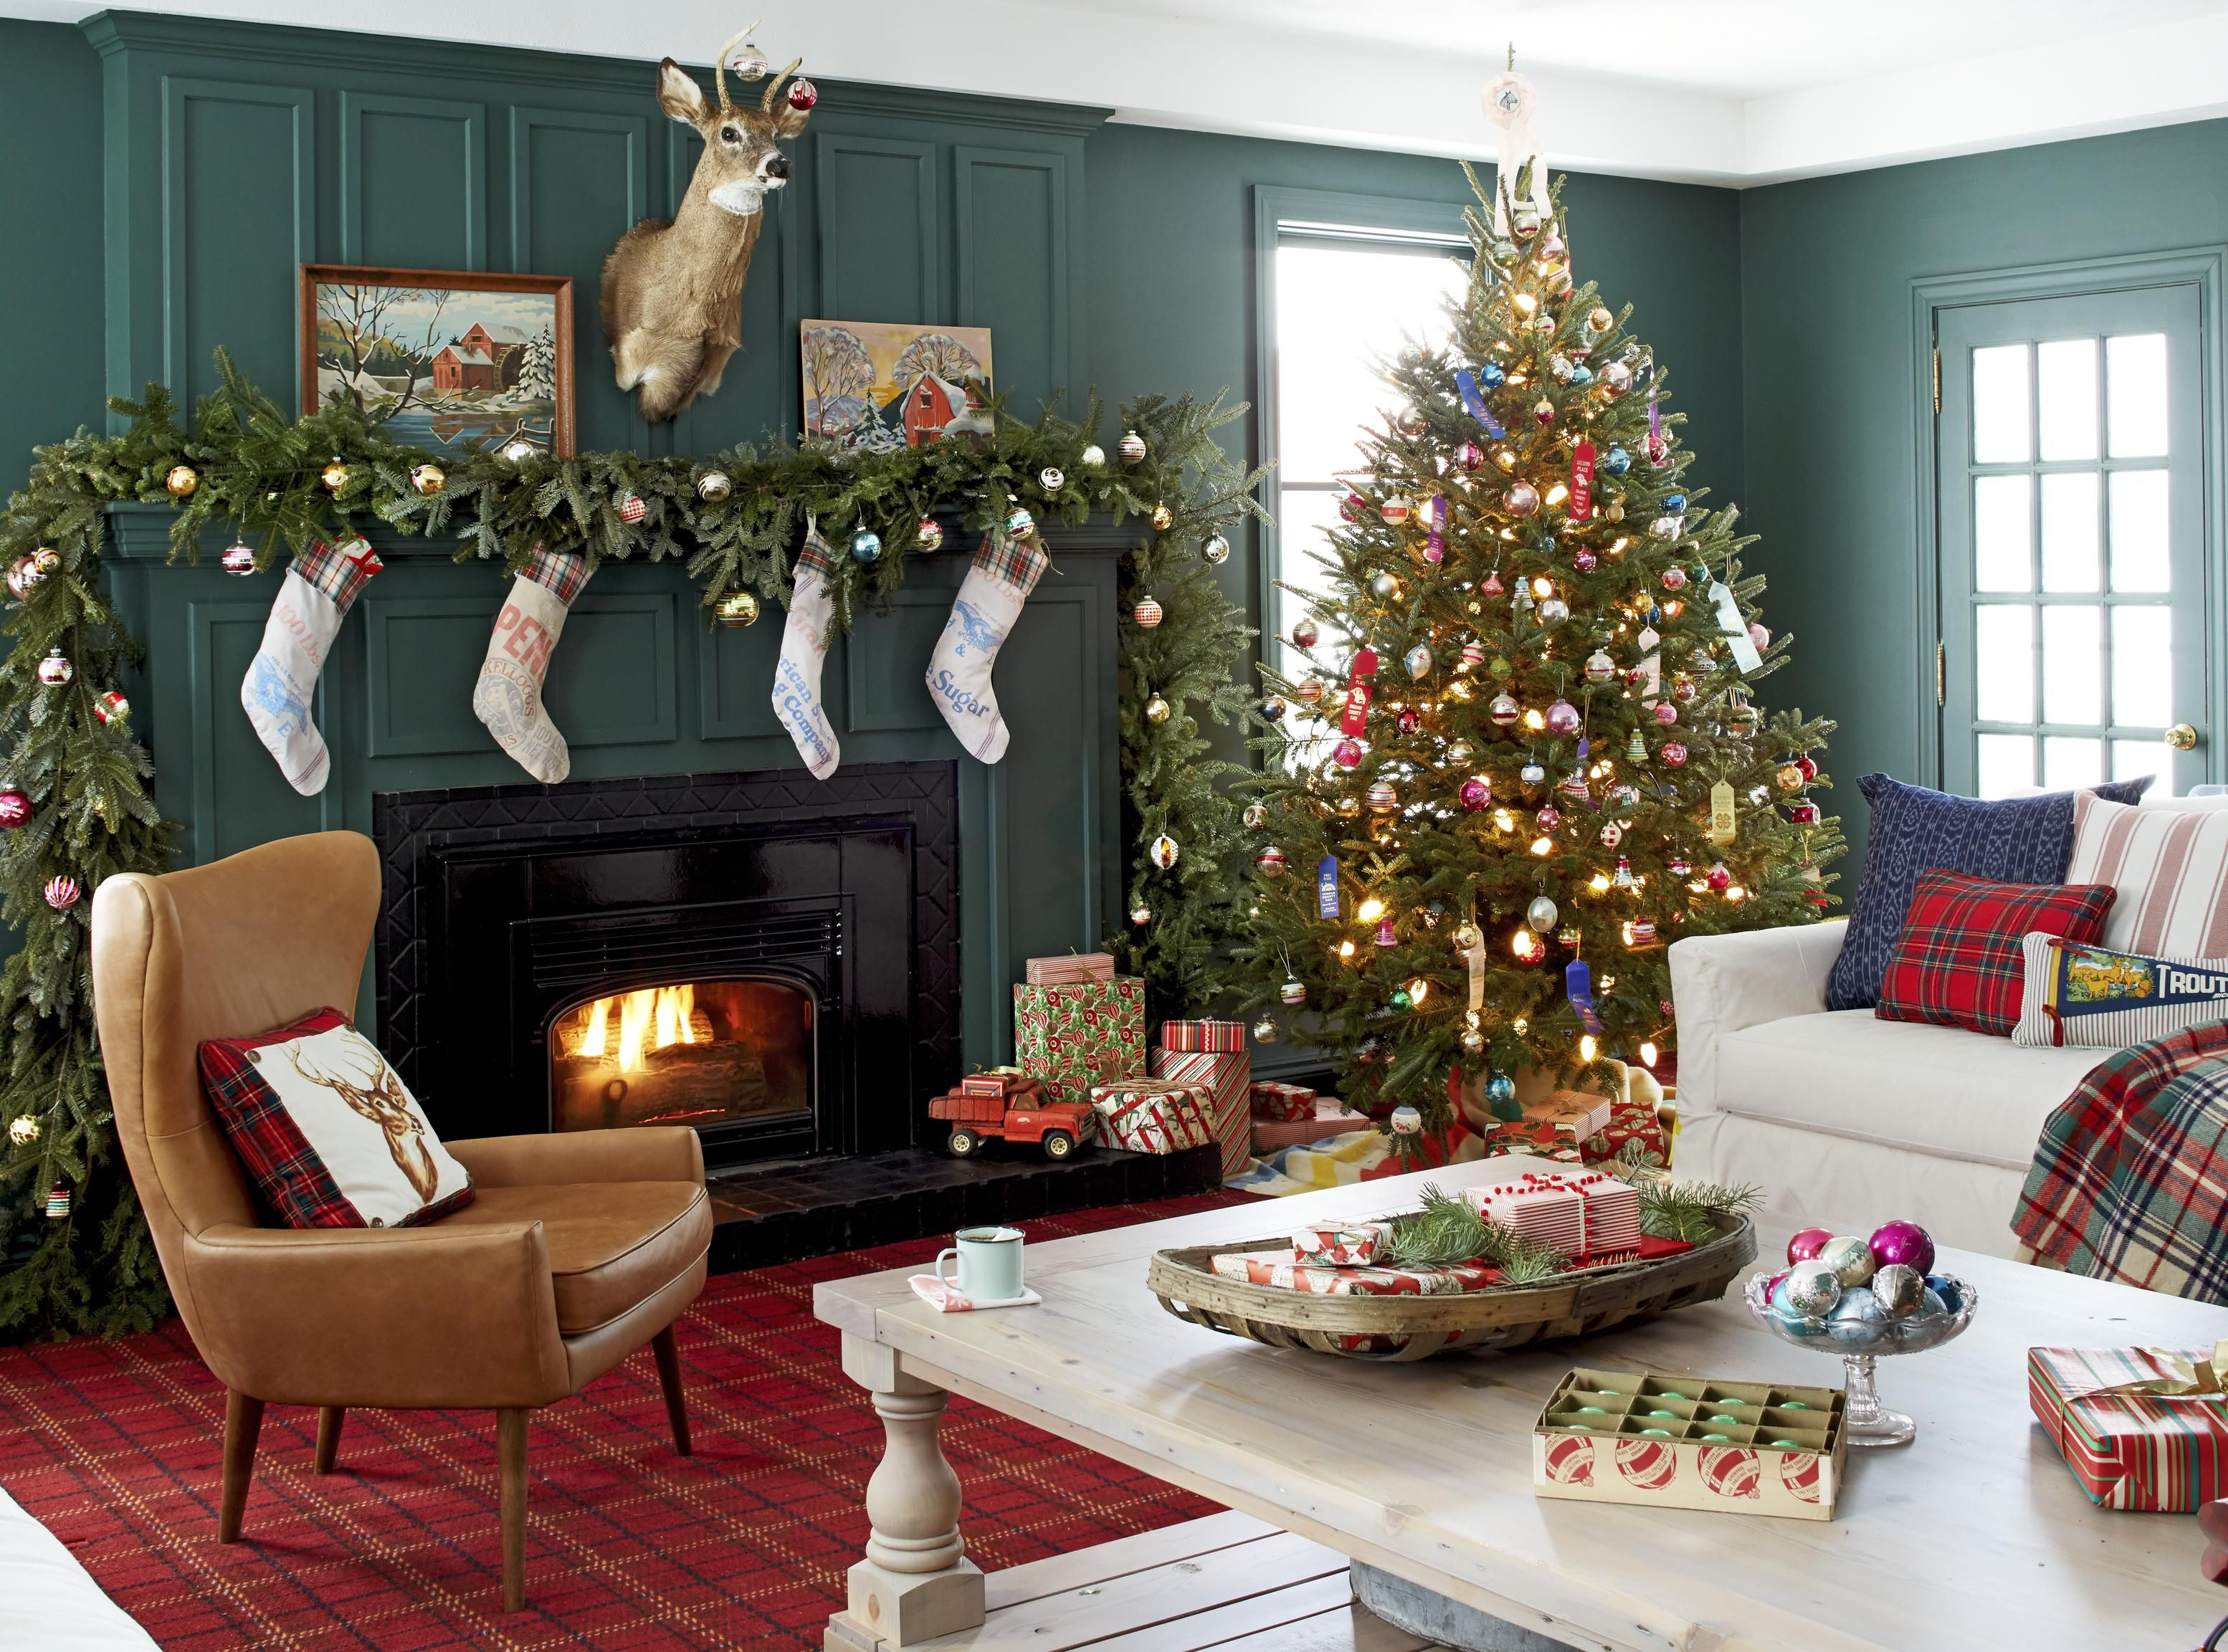 31 Farmhouse Christmas Decorating Ideas DIY Holiday